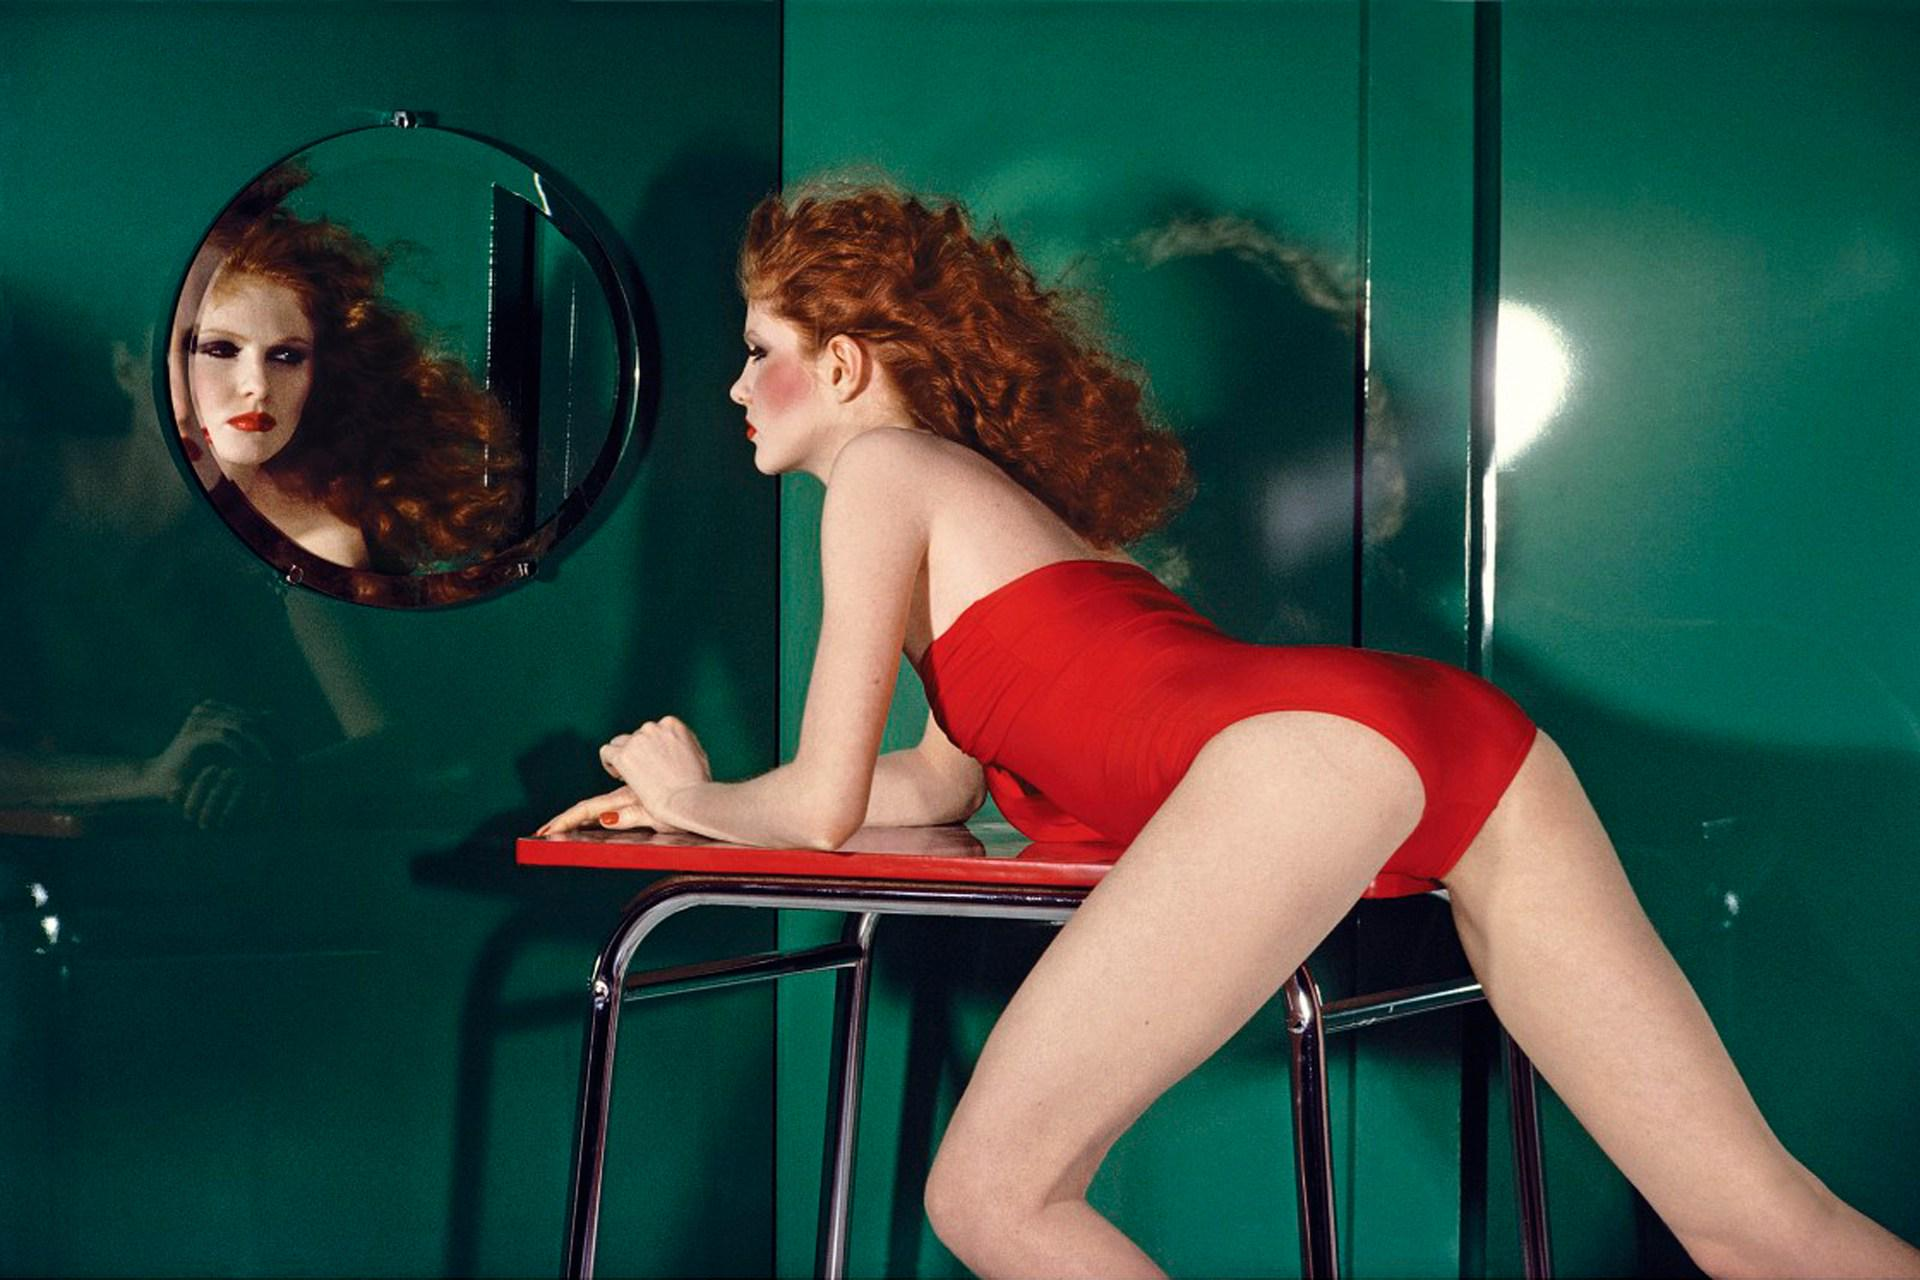 As a new exhibition opens dedicated to his life and works, get to know Guy Bourdin – http://t.co/KebqJBsgPG http://t.co/ddmFGyuLFv